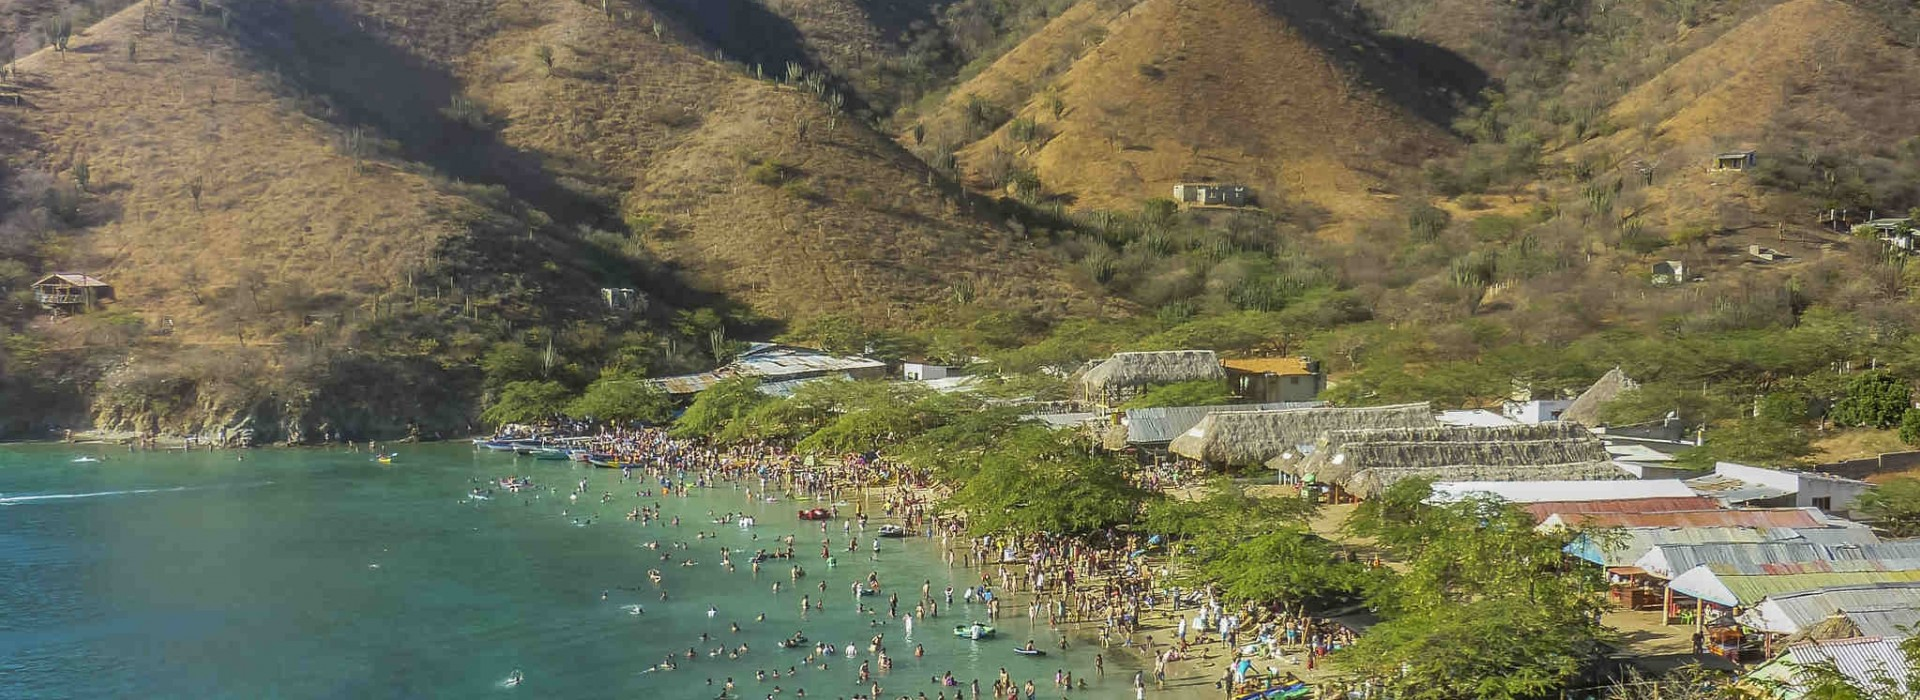 Visit Santa Marta in Colombia to see some of the loveliest beaches